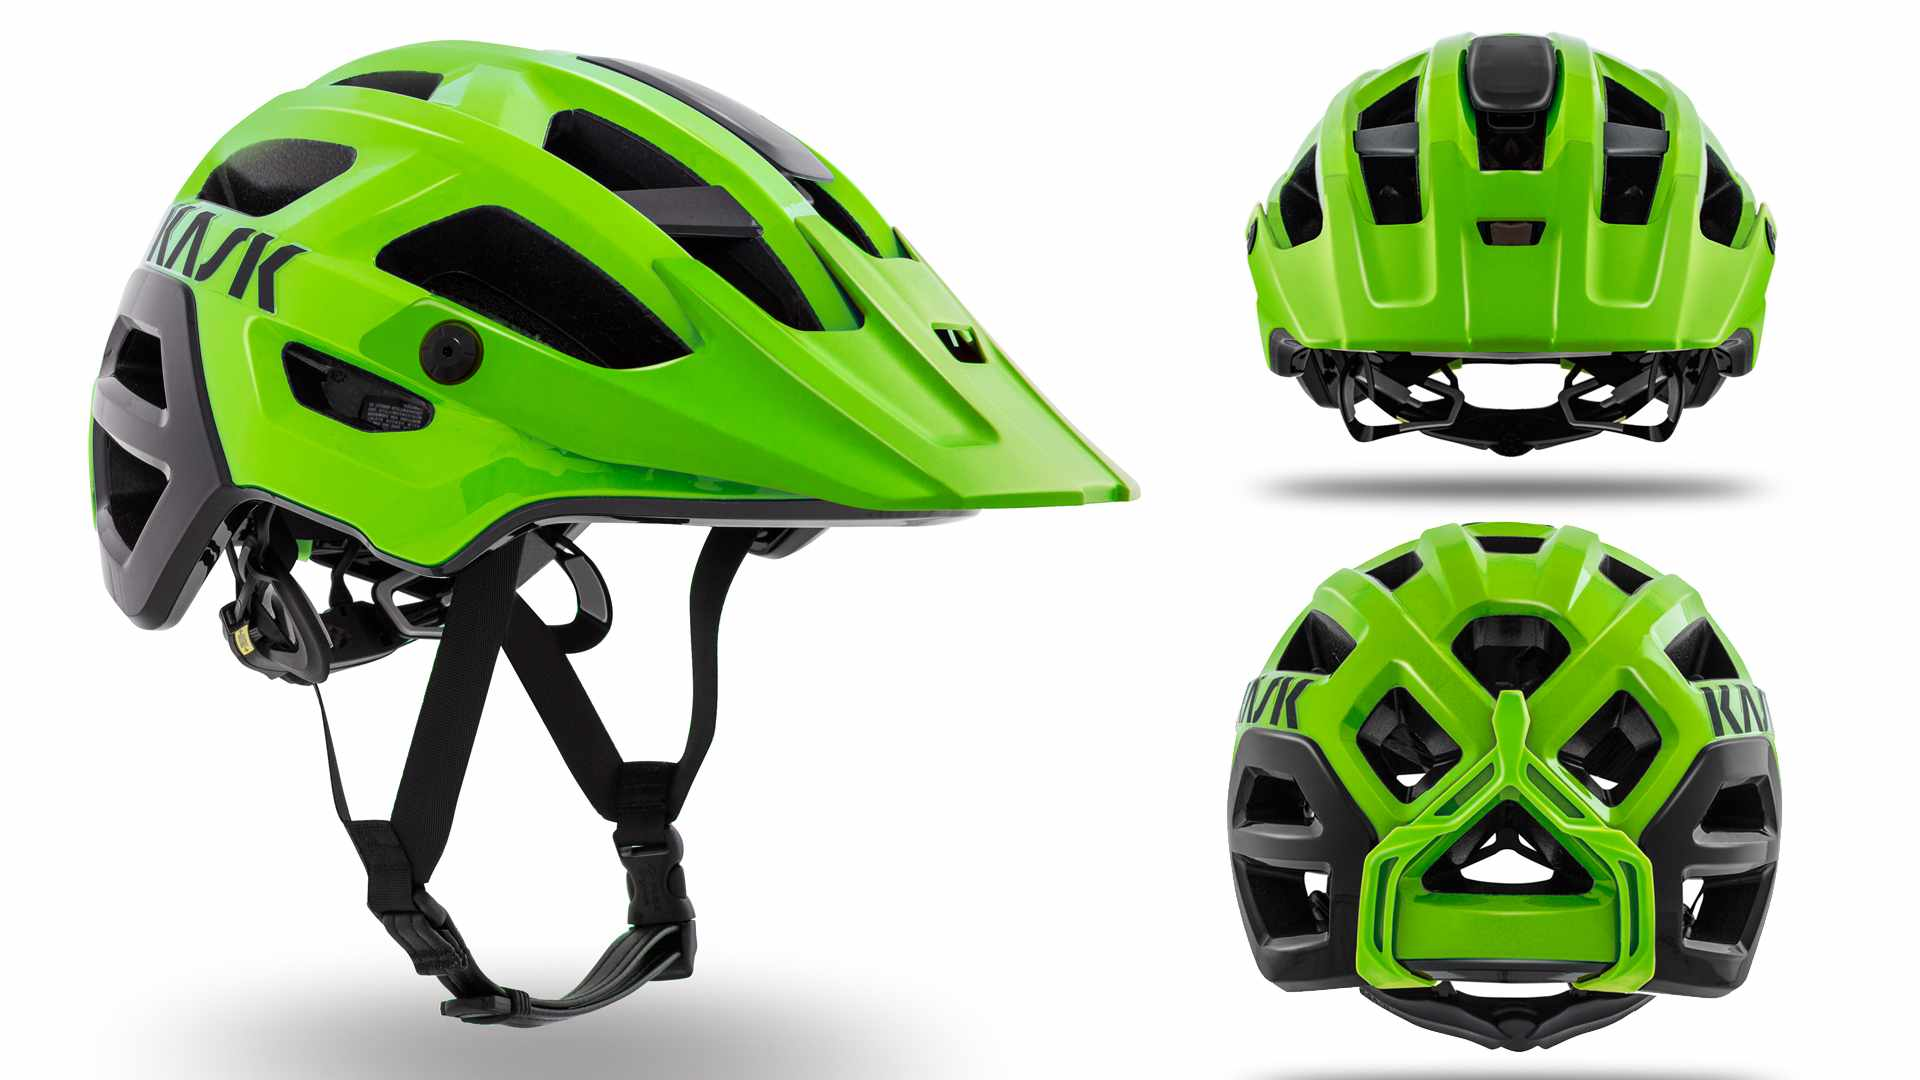 The new Kask Rex MTB helmet